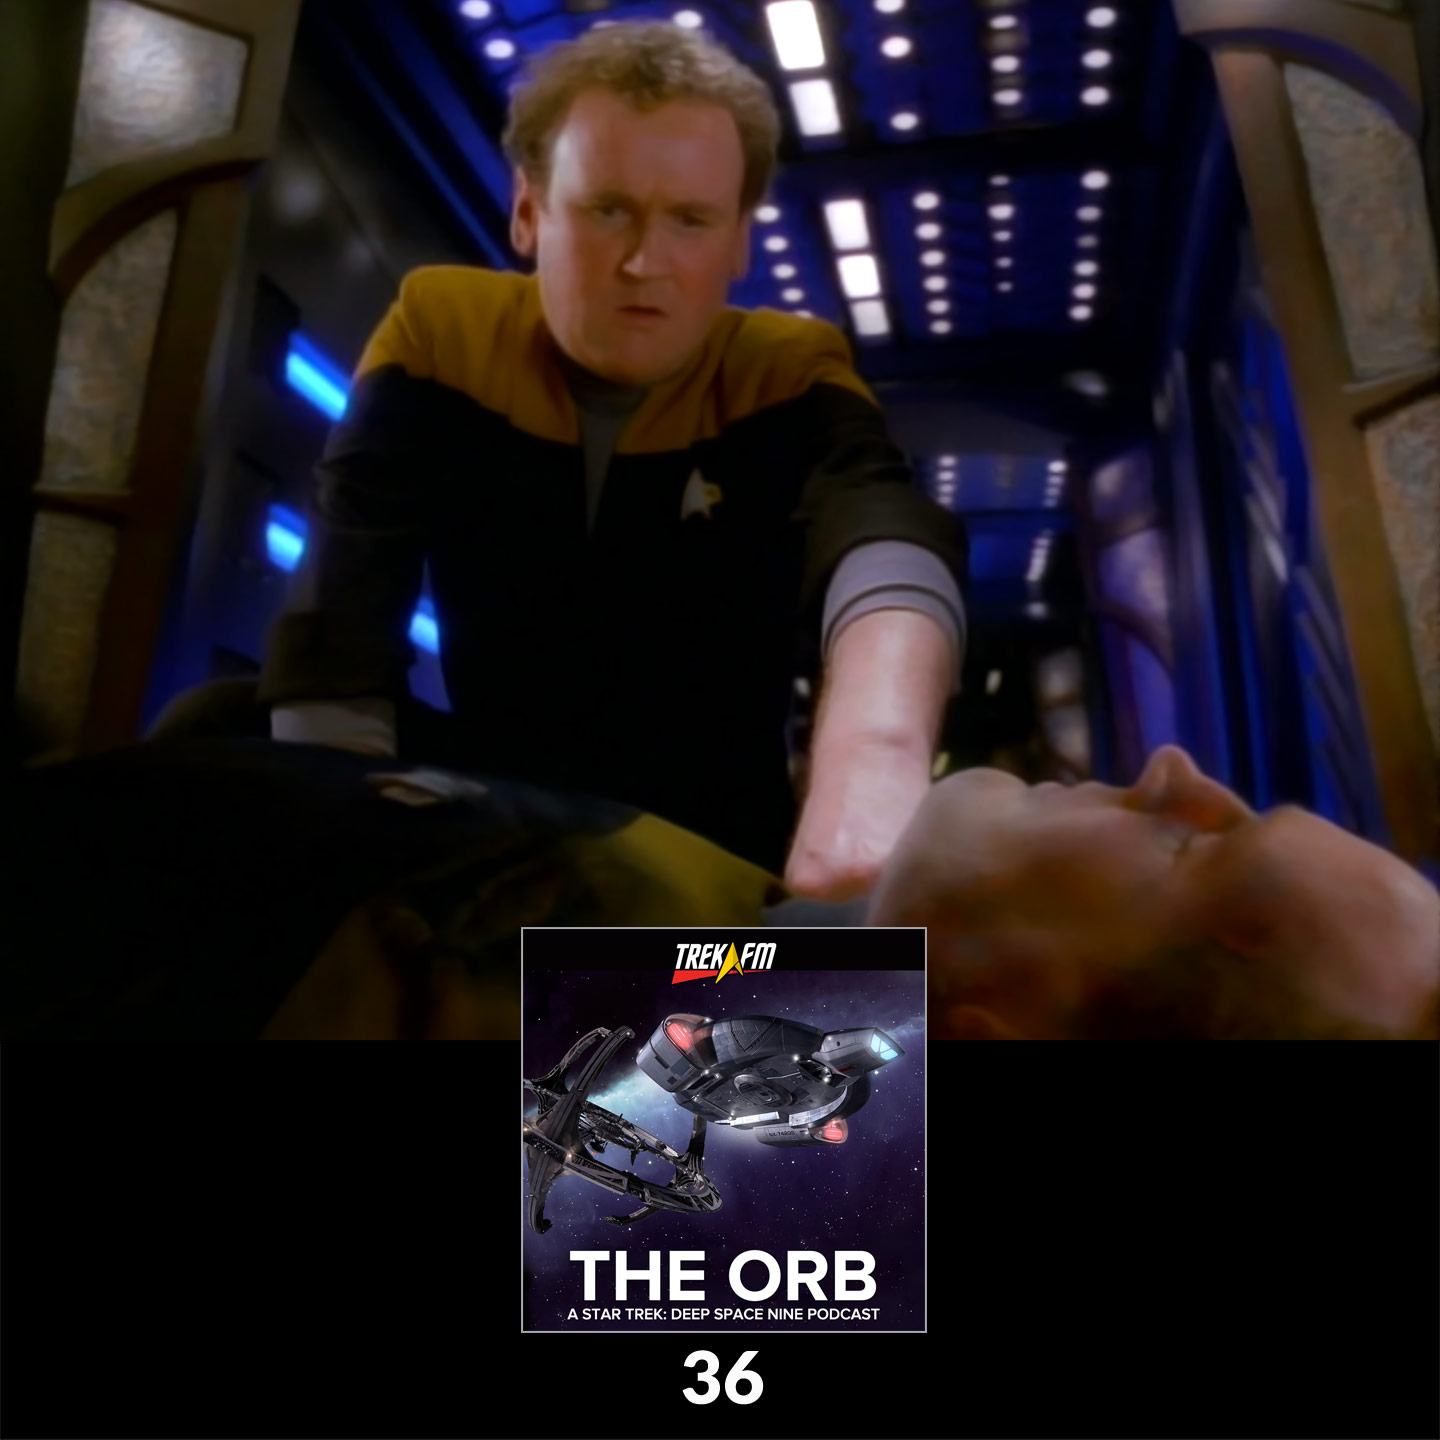 The Orb 36: The Two-Aspirin Show